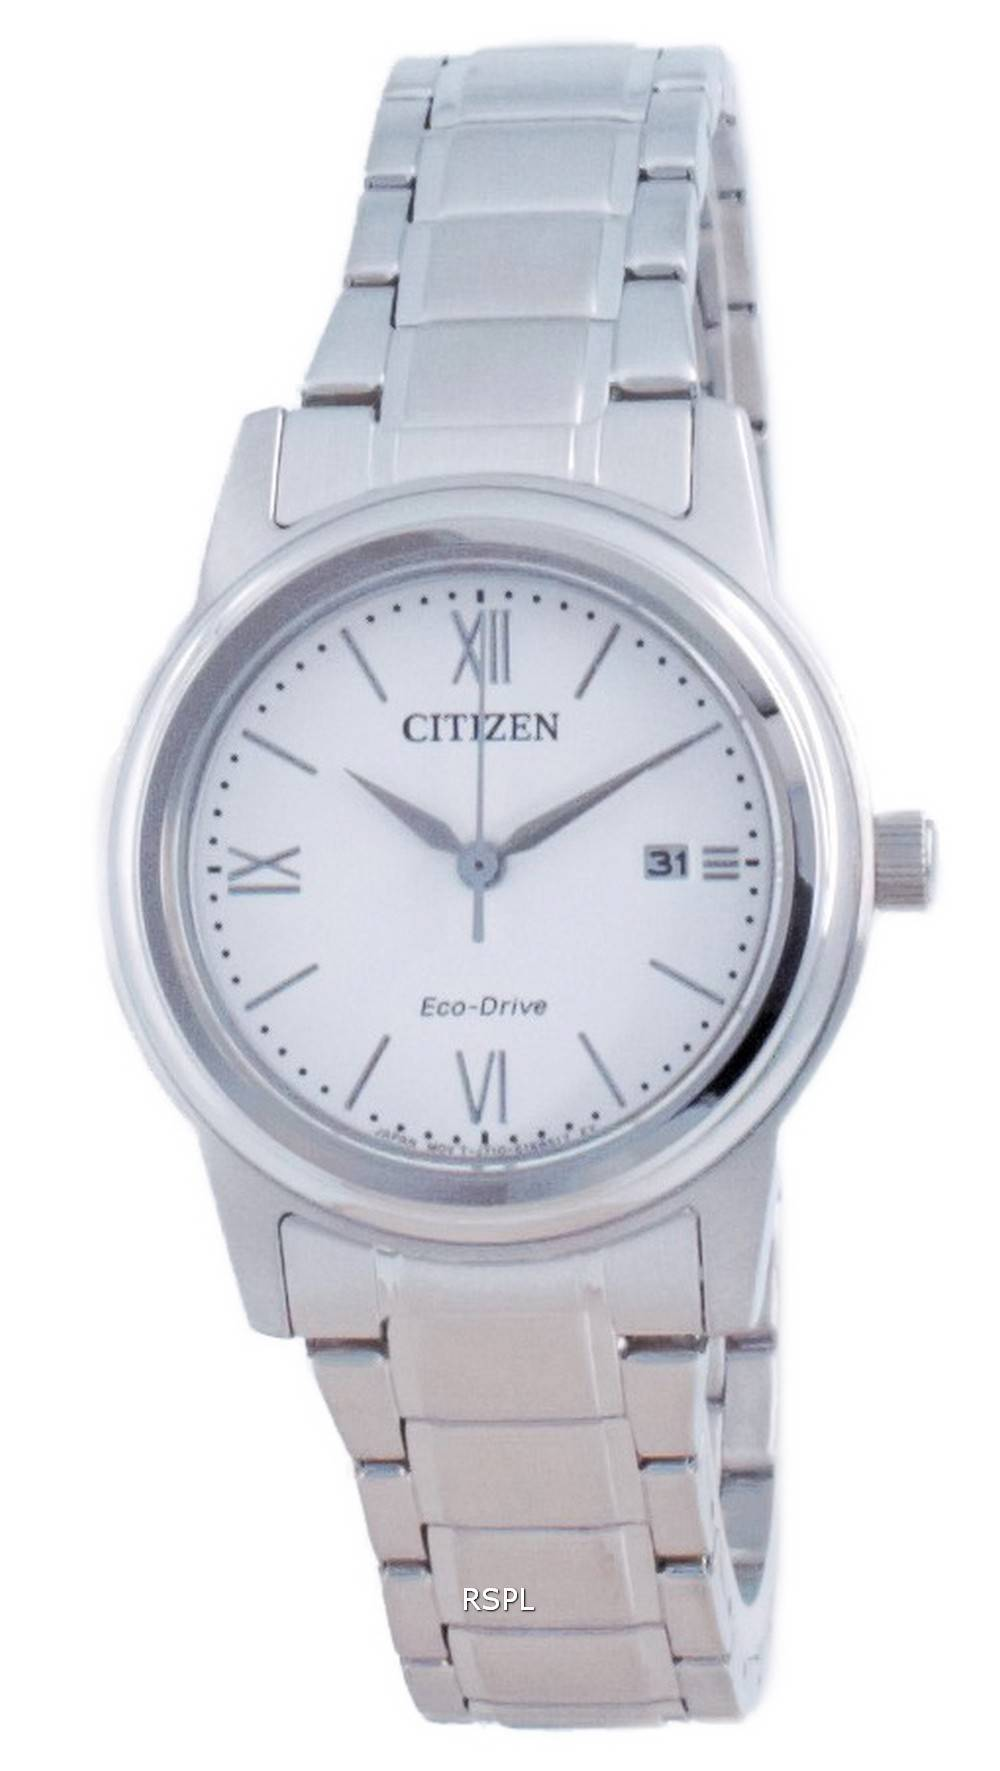 Citizen Classic White Dial Stainless Steel Eco-Drive FE1220-89A 100M Women's Watch